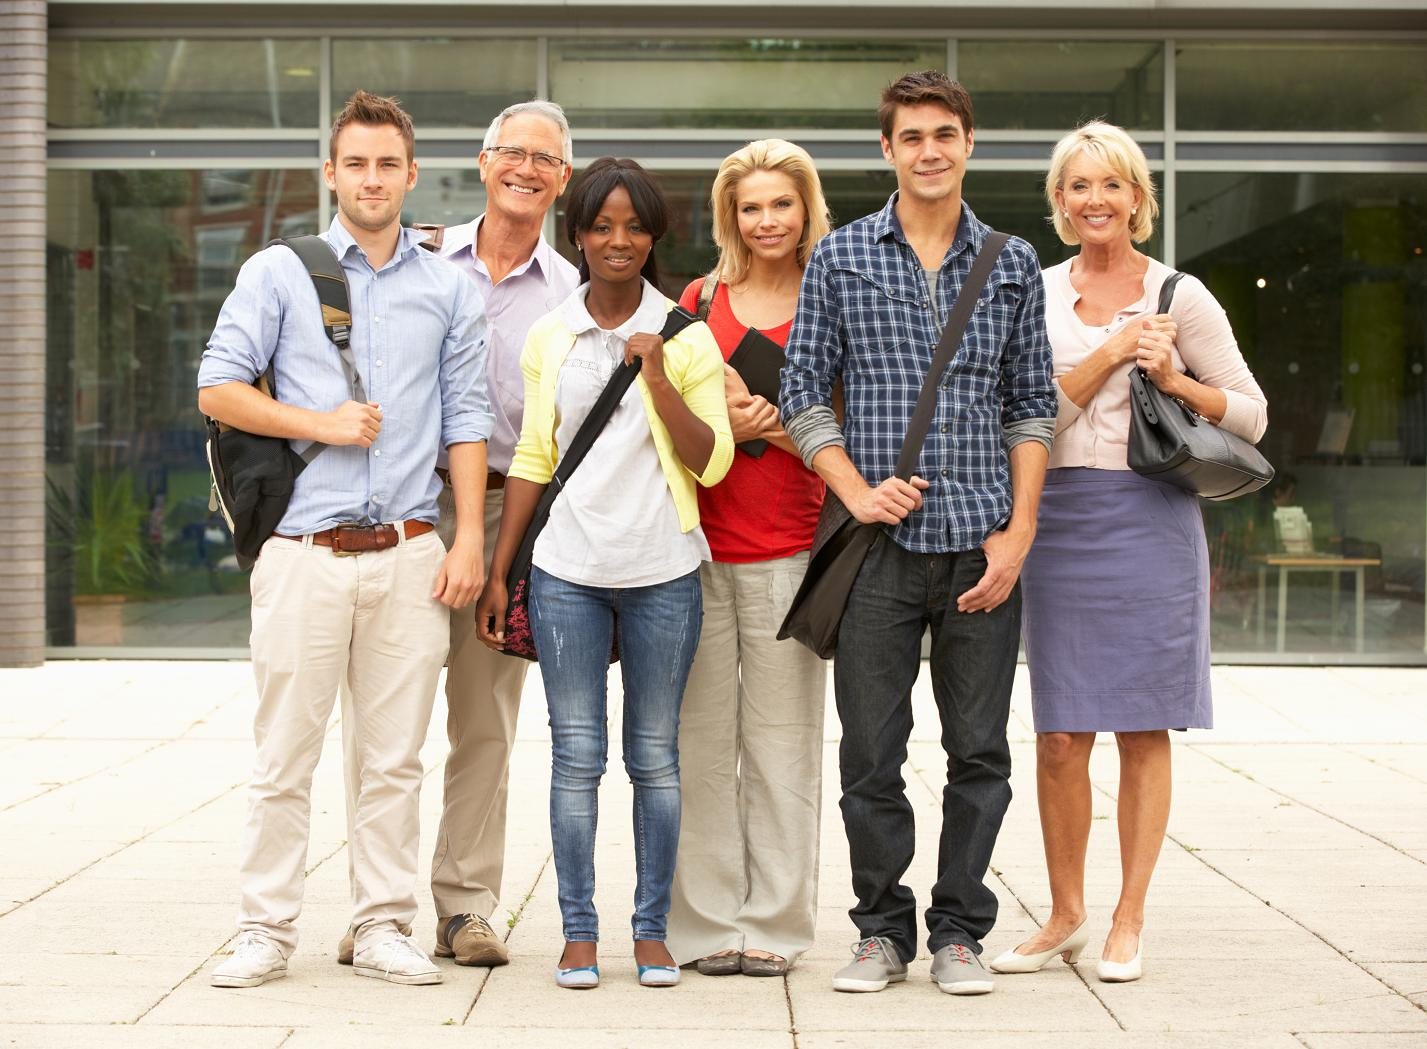 Adults-Students-at-College-Monkey-Business-42196265